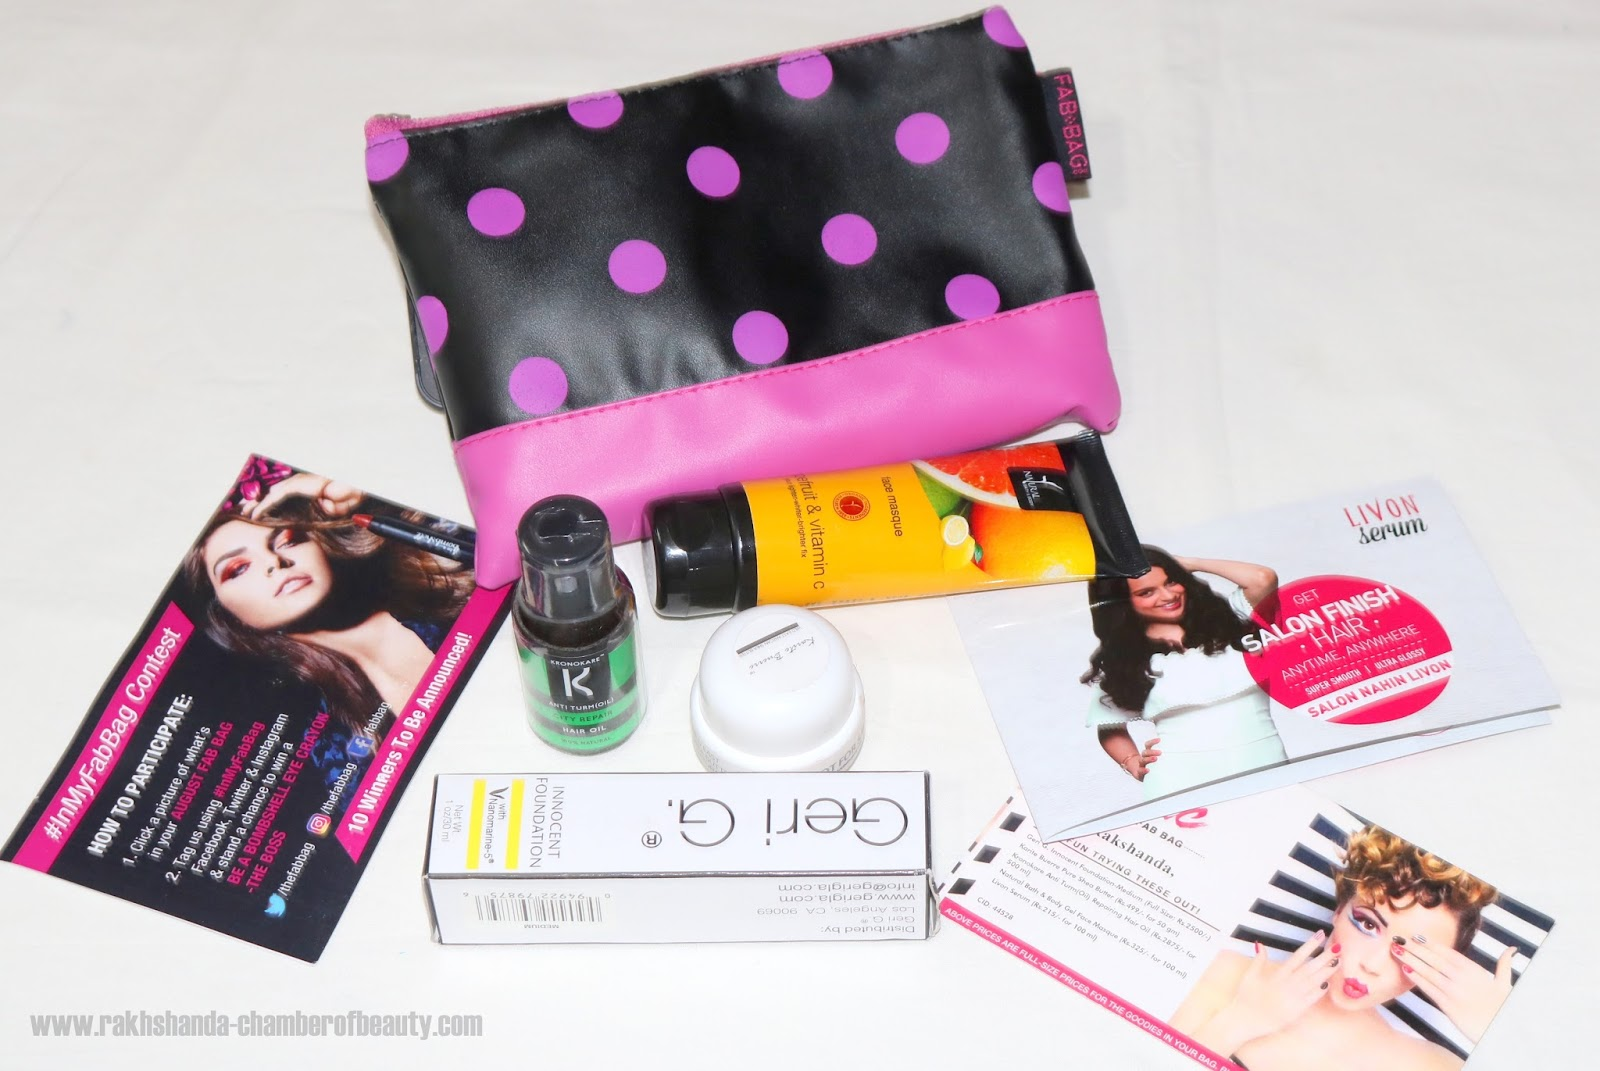 August 2016 Fab Bag review, price details